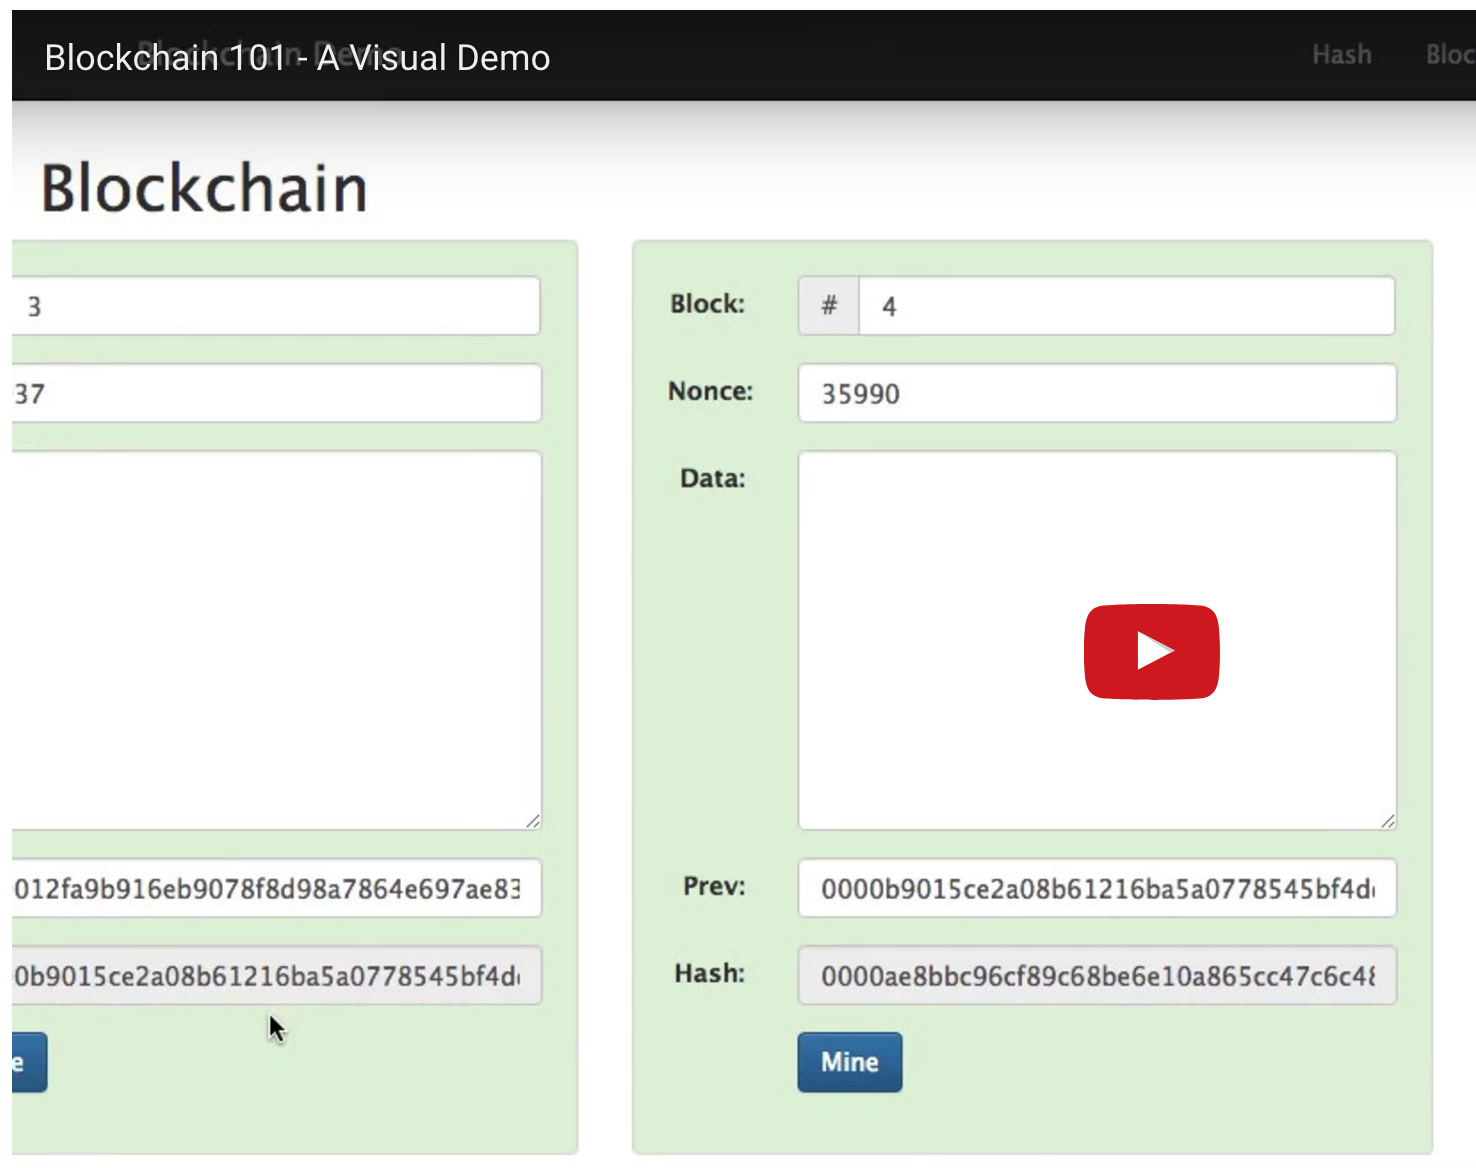 Blockchain visual demo